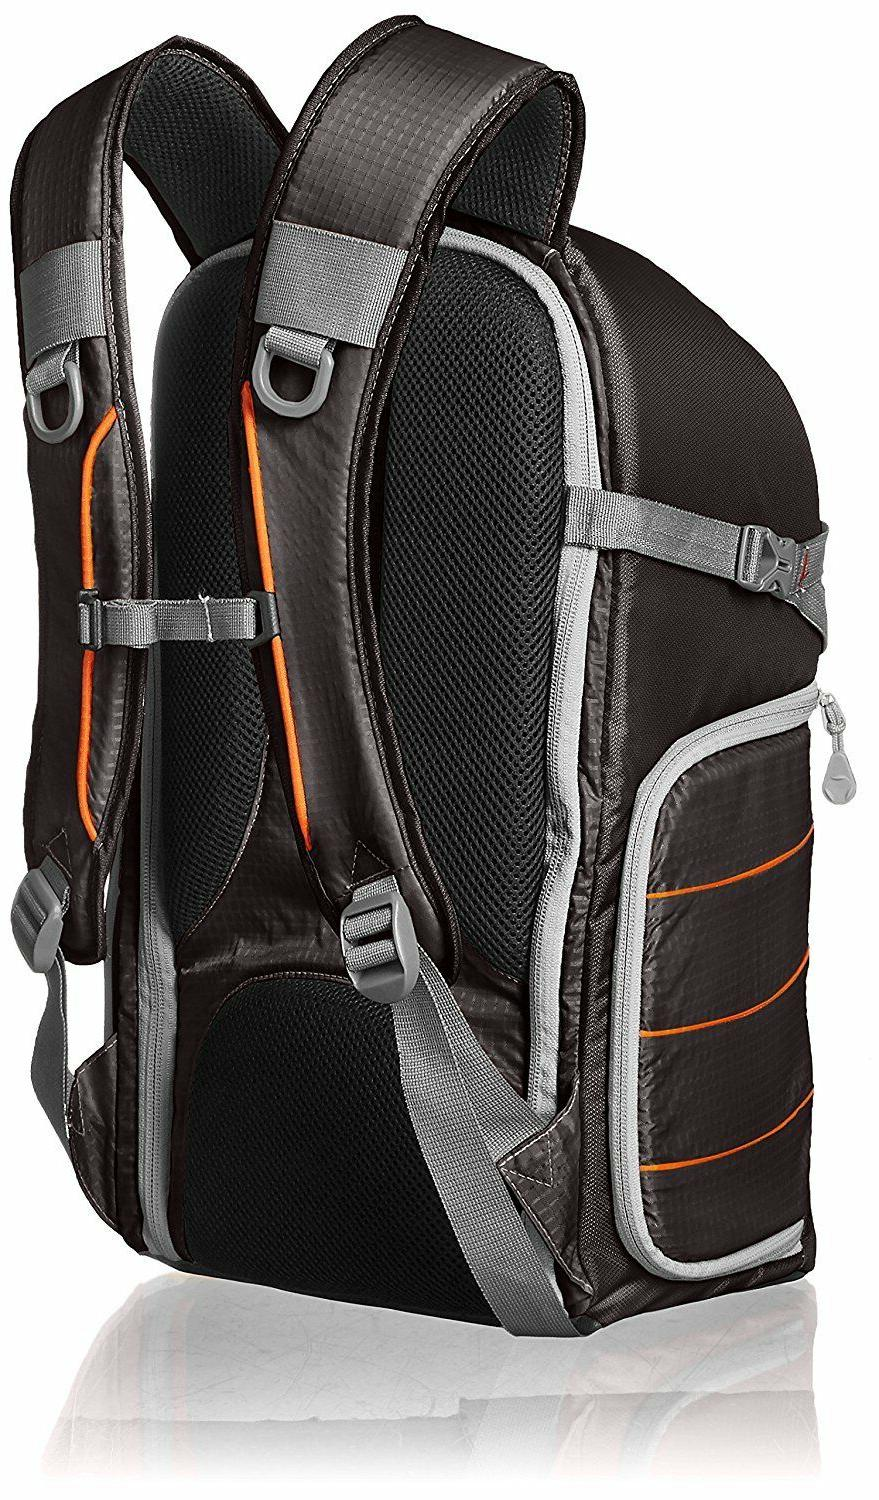 AmazonBasics Trekker Accessories Backpack Carry Bag